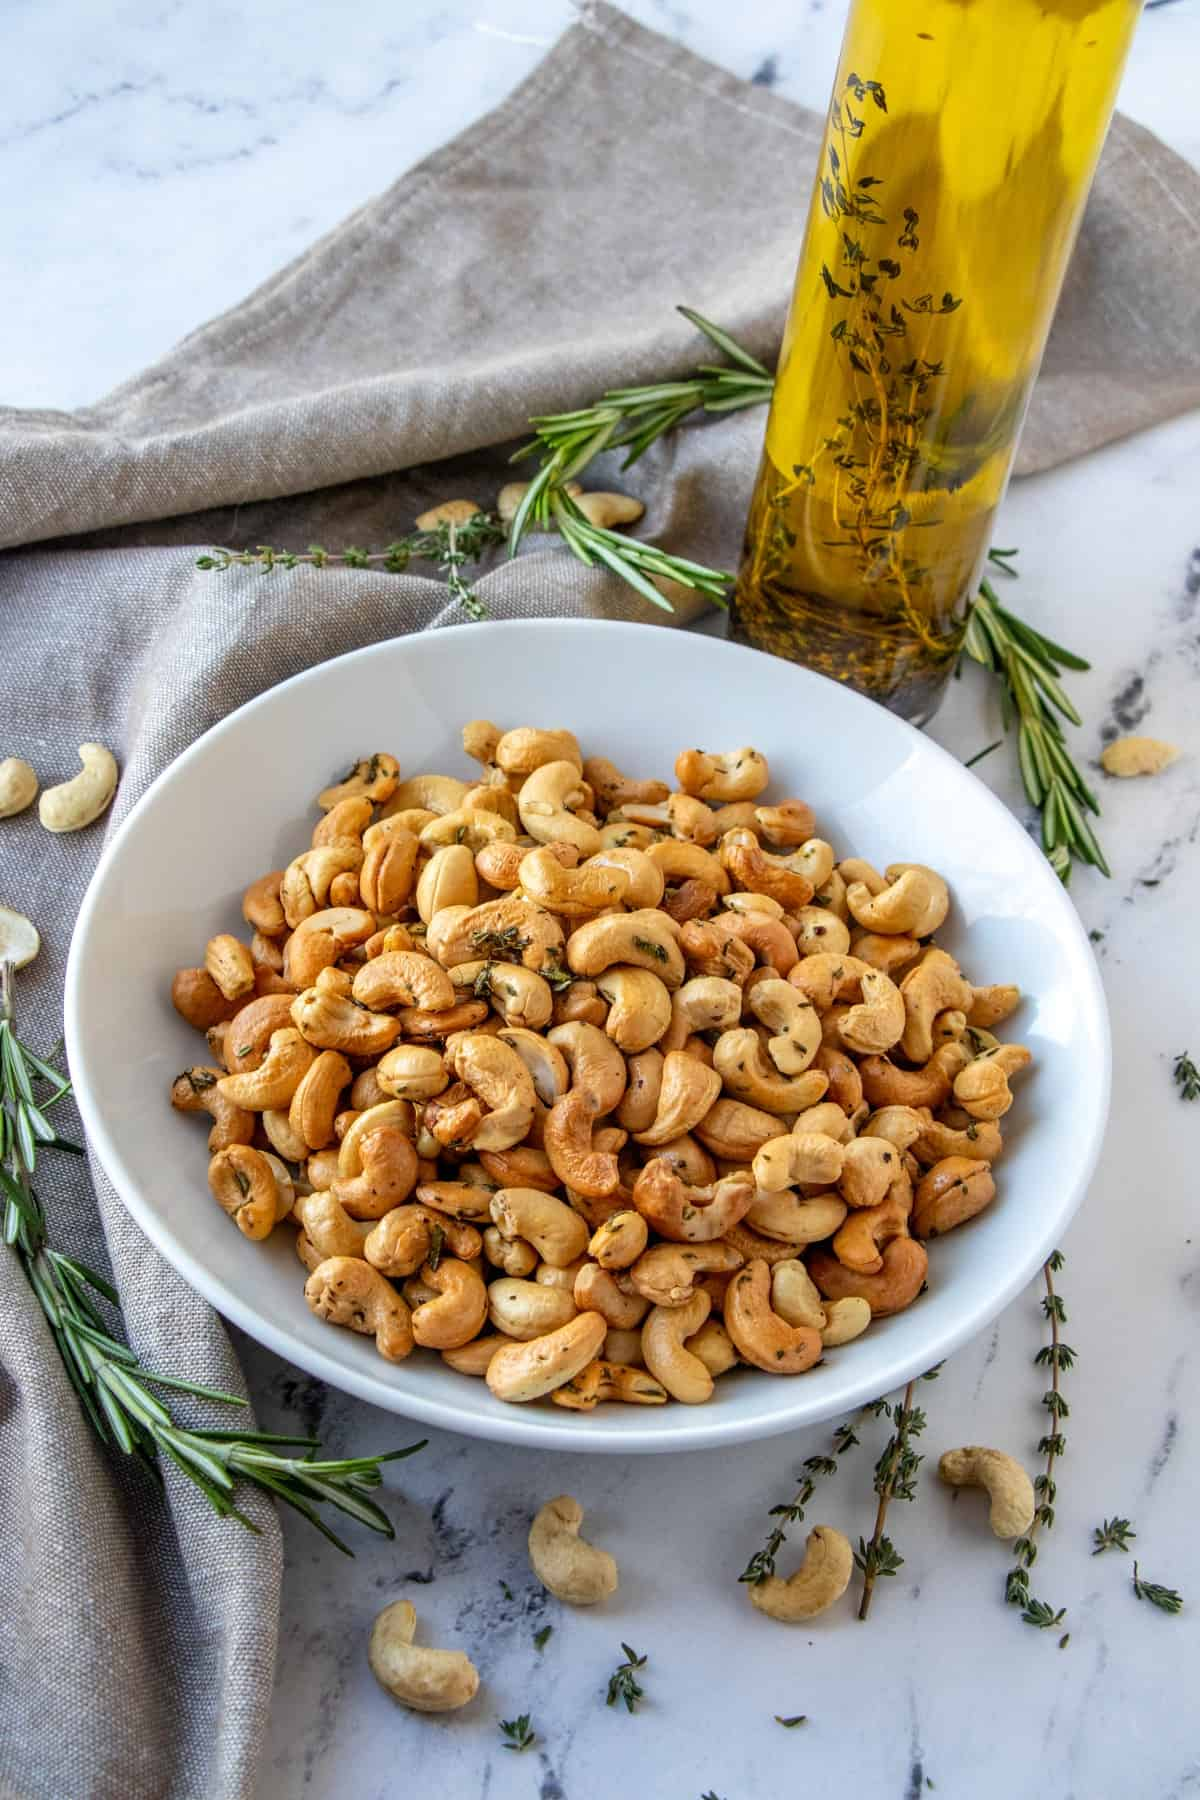 Golden brown cashew nuts in a bowl